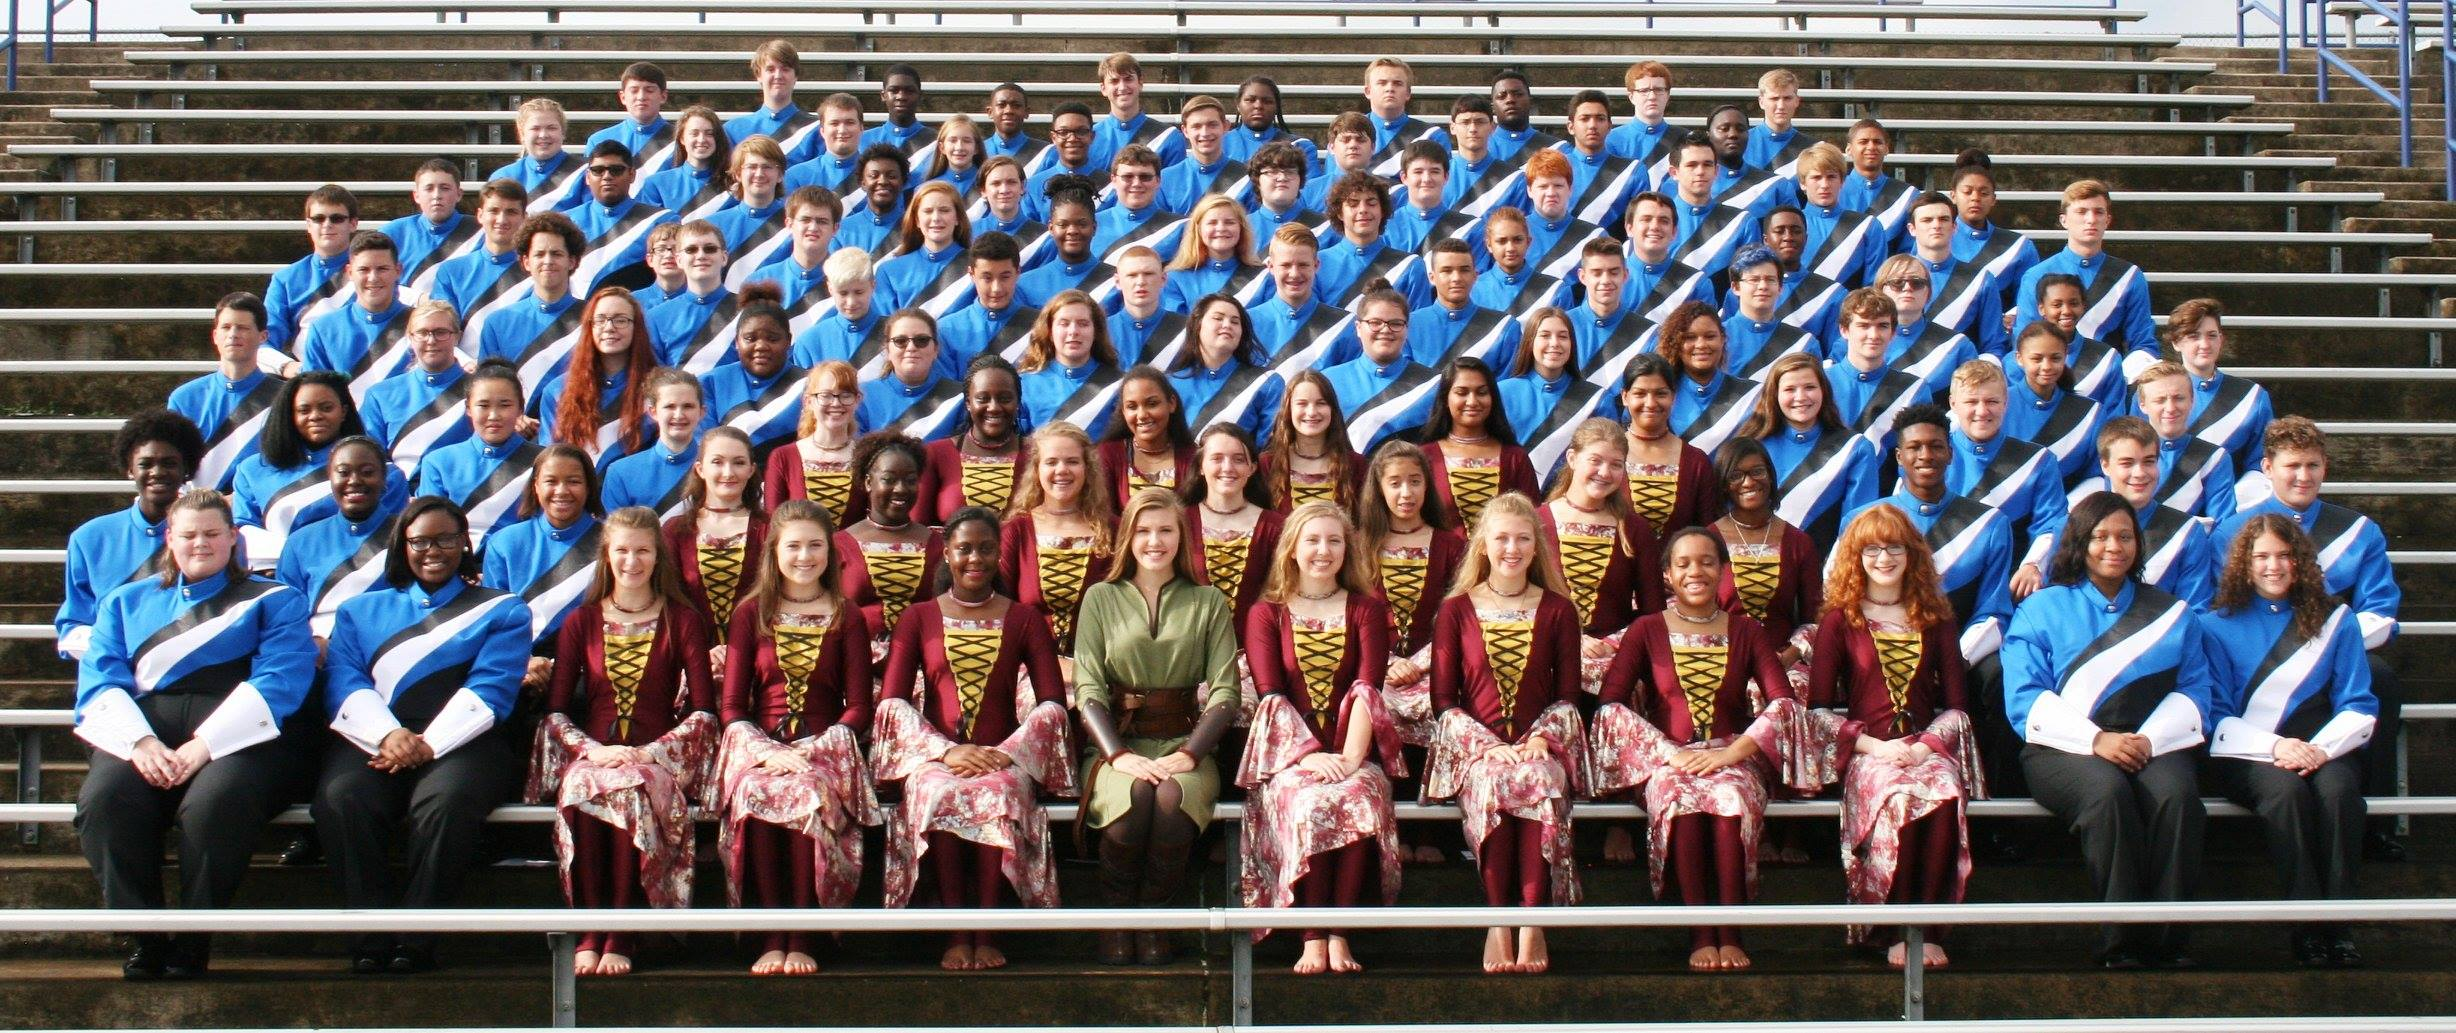 AHS Badger Pride Marching Band brings home state championship title